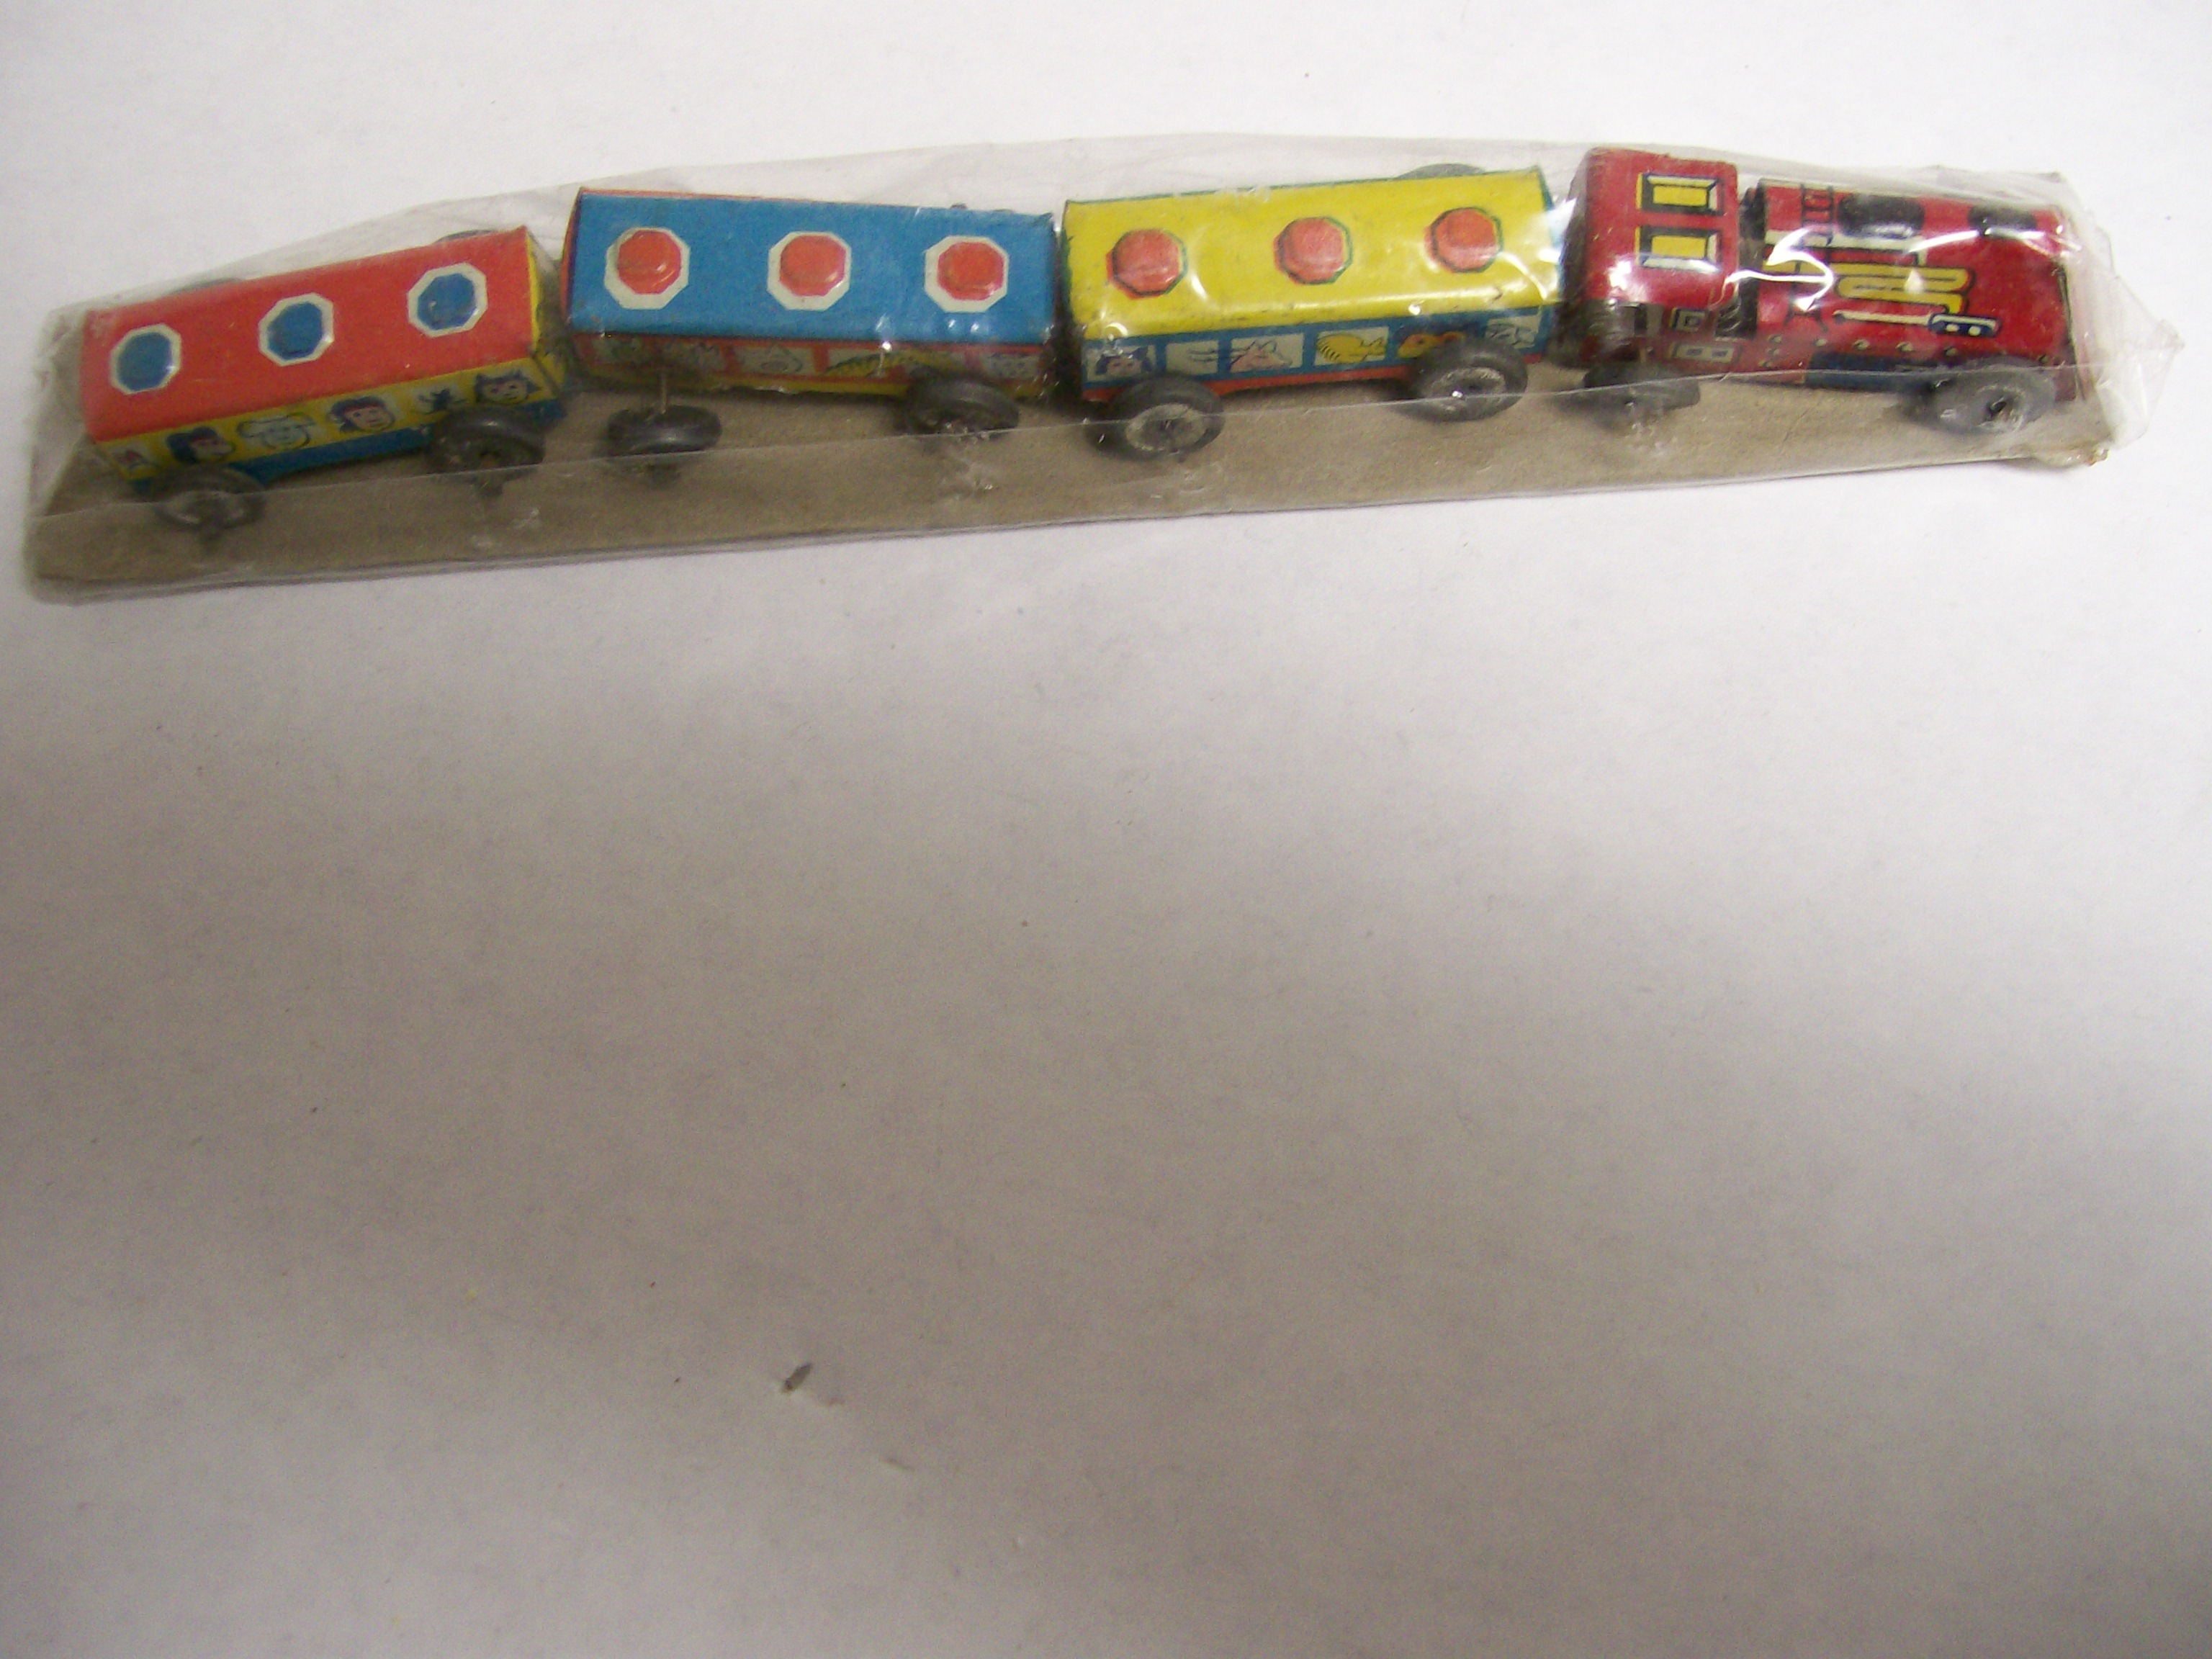 Rare tin litho train from Japan 1930's with metal wheels